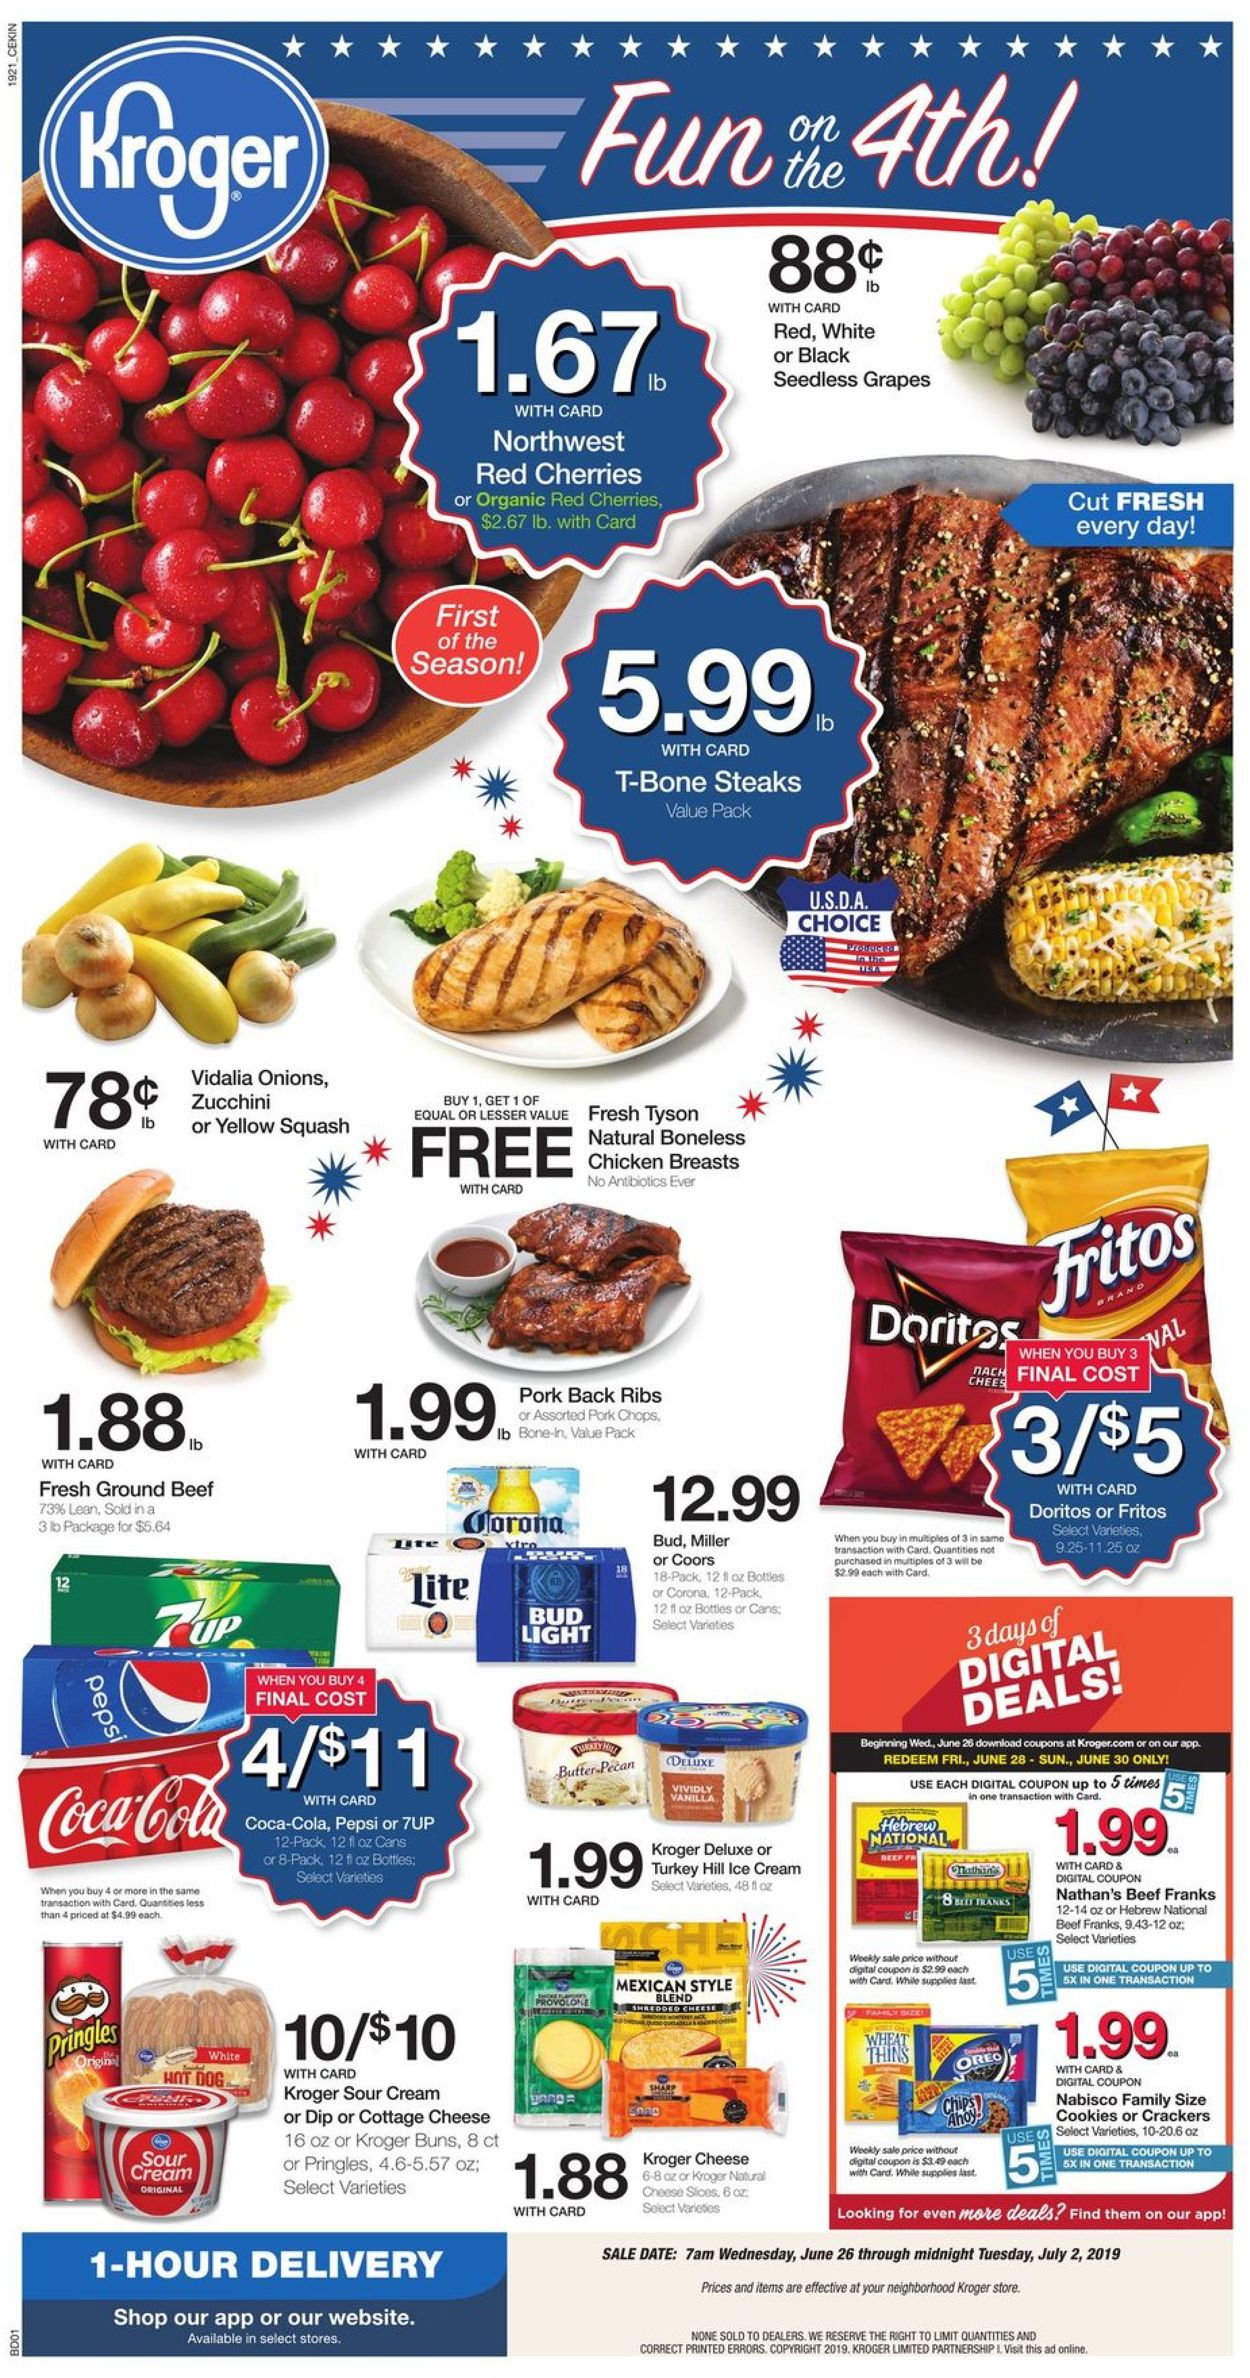 Kroger Christmas Hours 2019.Kroger Current Weekly Ad 06 26 07 02 2019 Frequent Ads Com